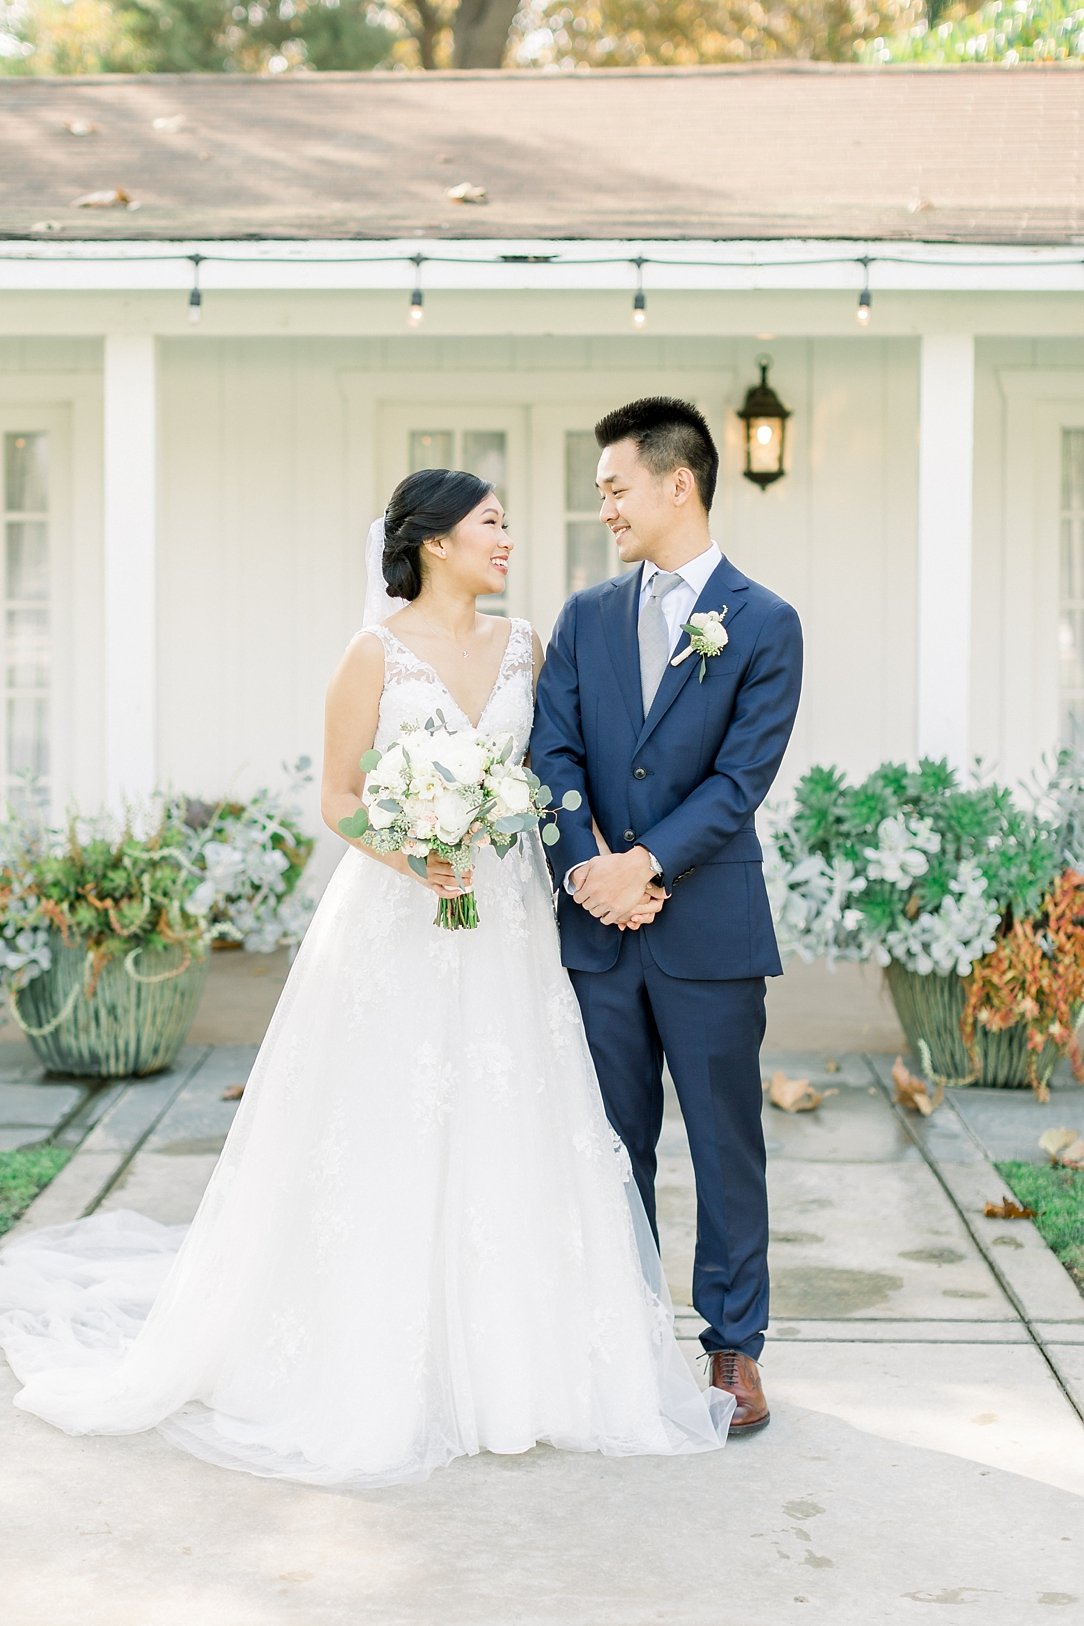 A Periwinkle Blue Inspired Wedding At Calamigos Equestrian In Burbank By Natural Light Photographer Madison Ellis. (64)